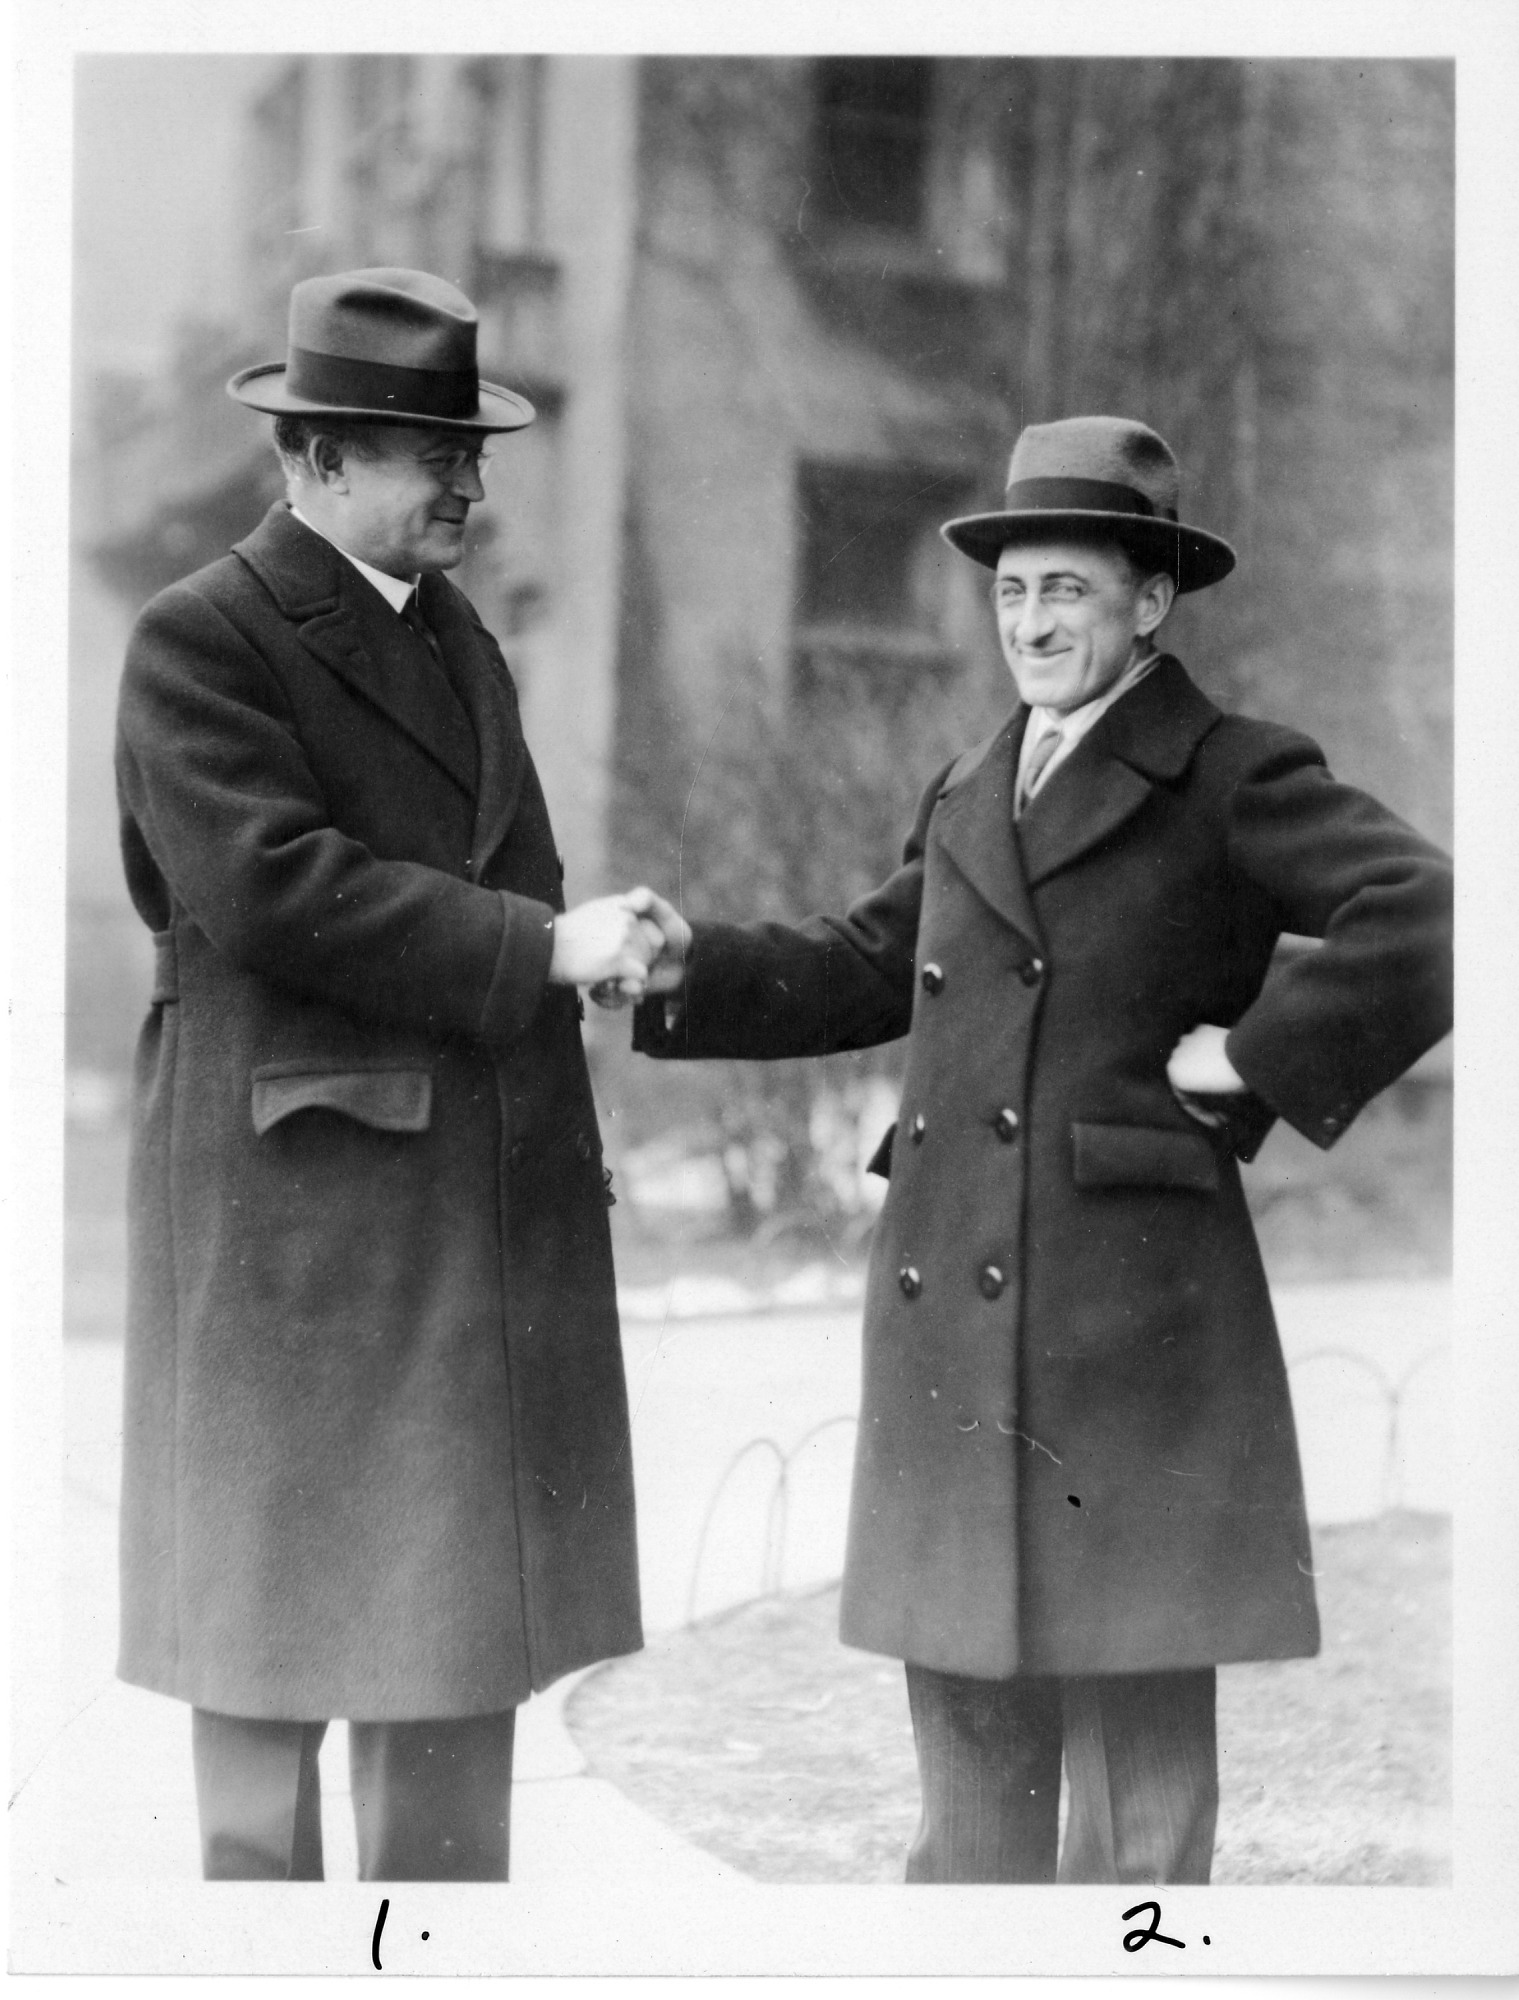 Preview of Henry Gordon Gale (left), shaking hands with Arthur Jeffrey Dempster (right)